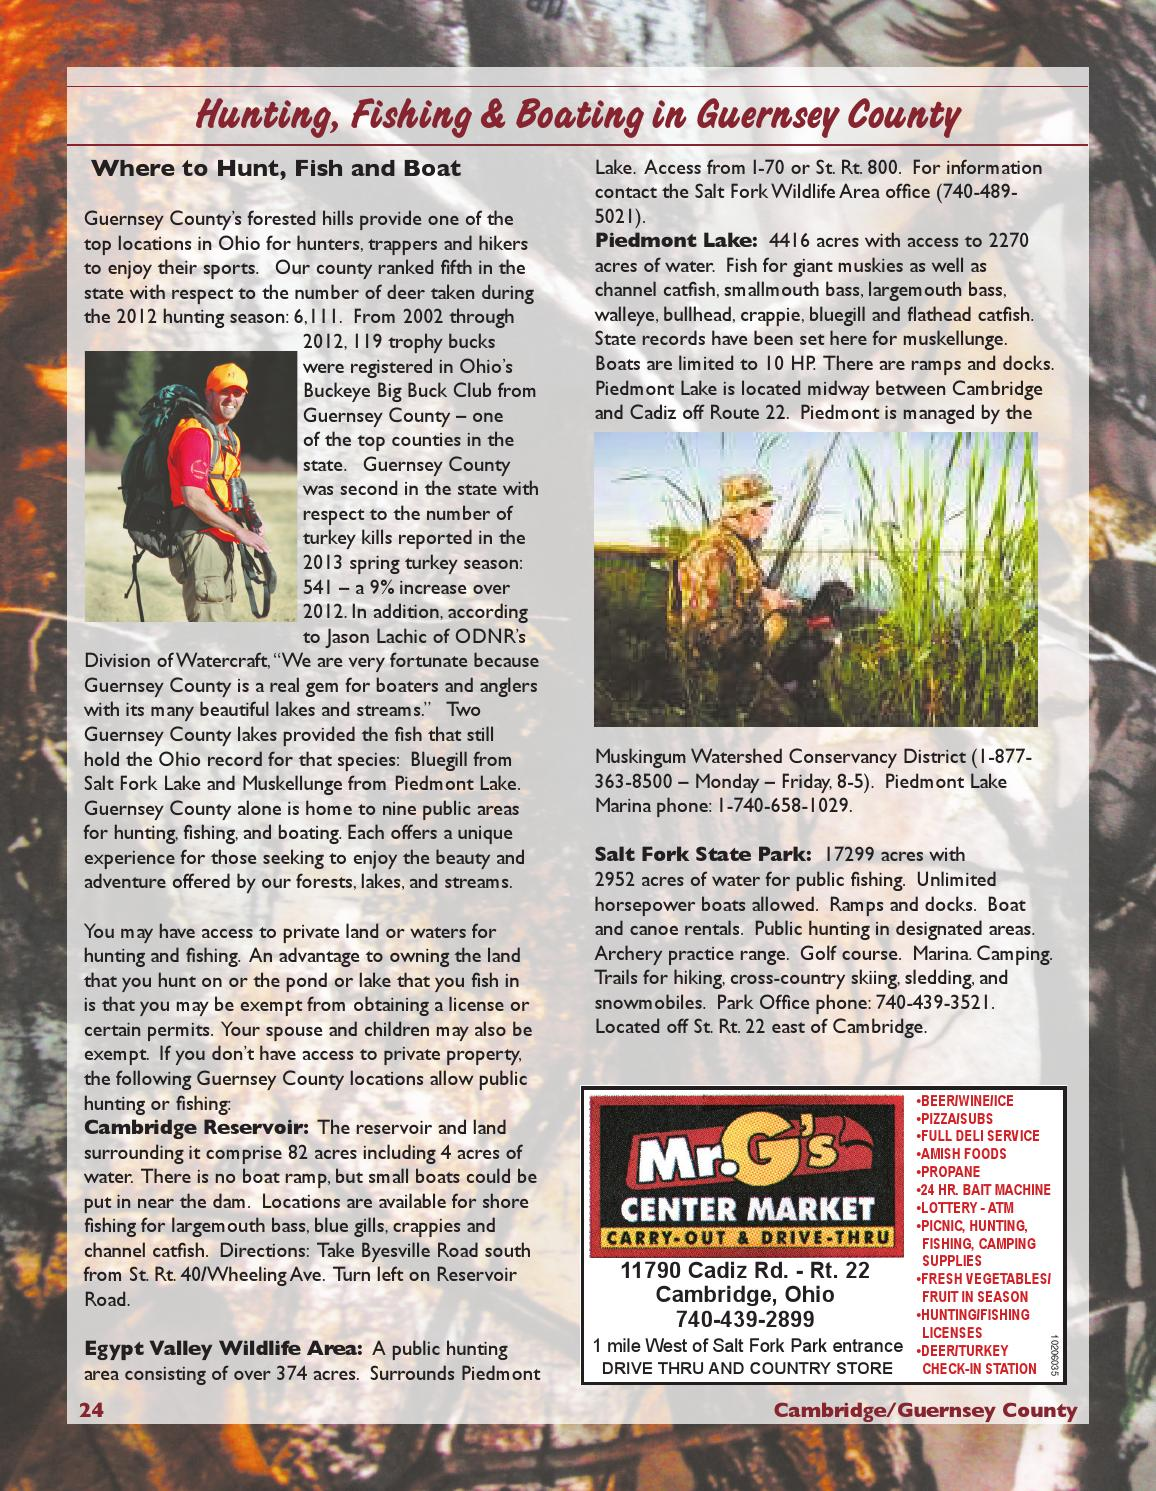 2014 Cambridge/Guernsey County Visitors & Hunting Guide by